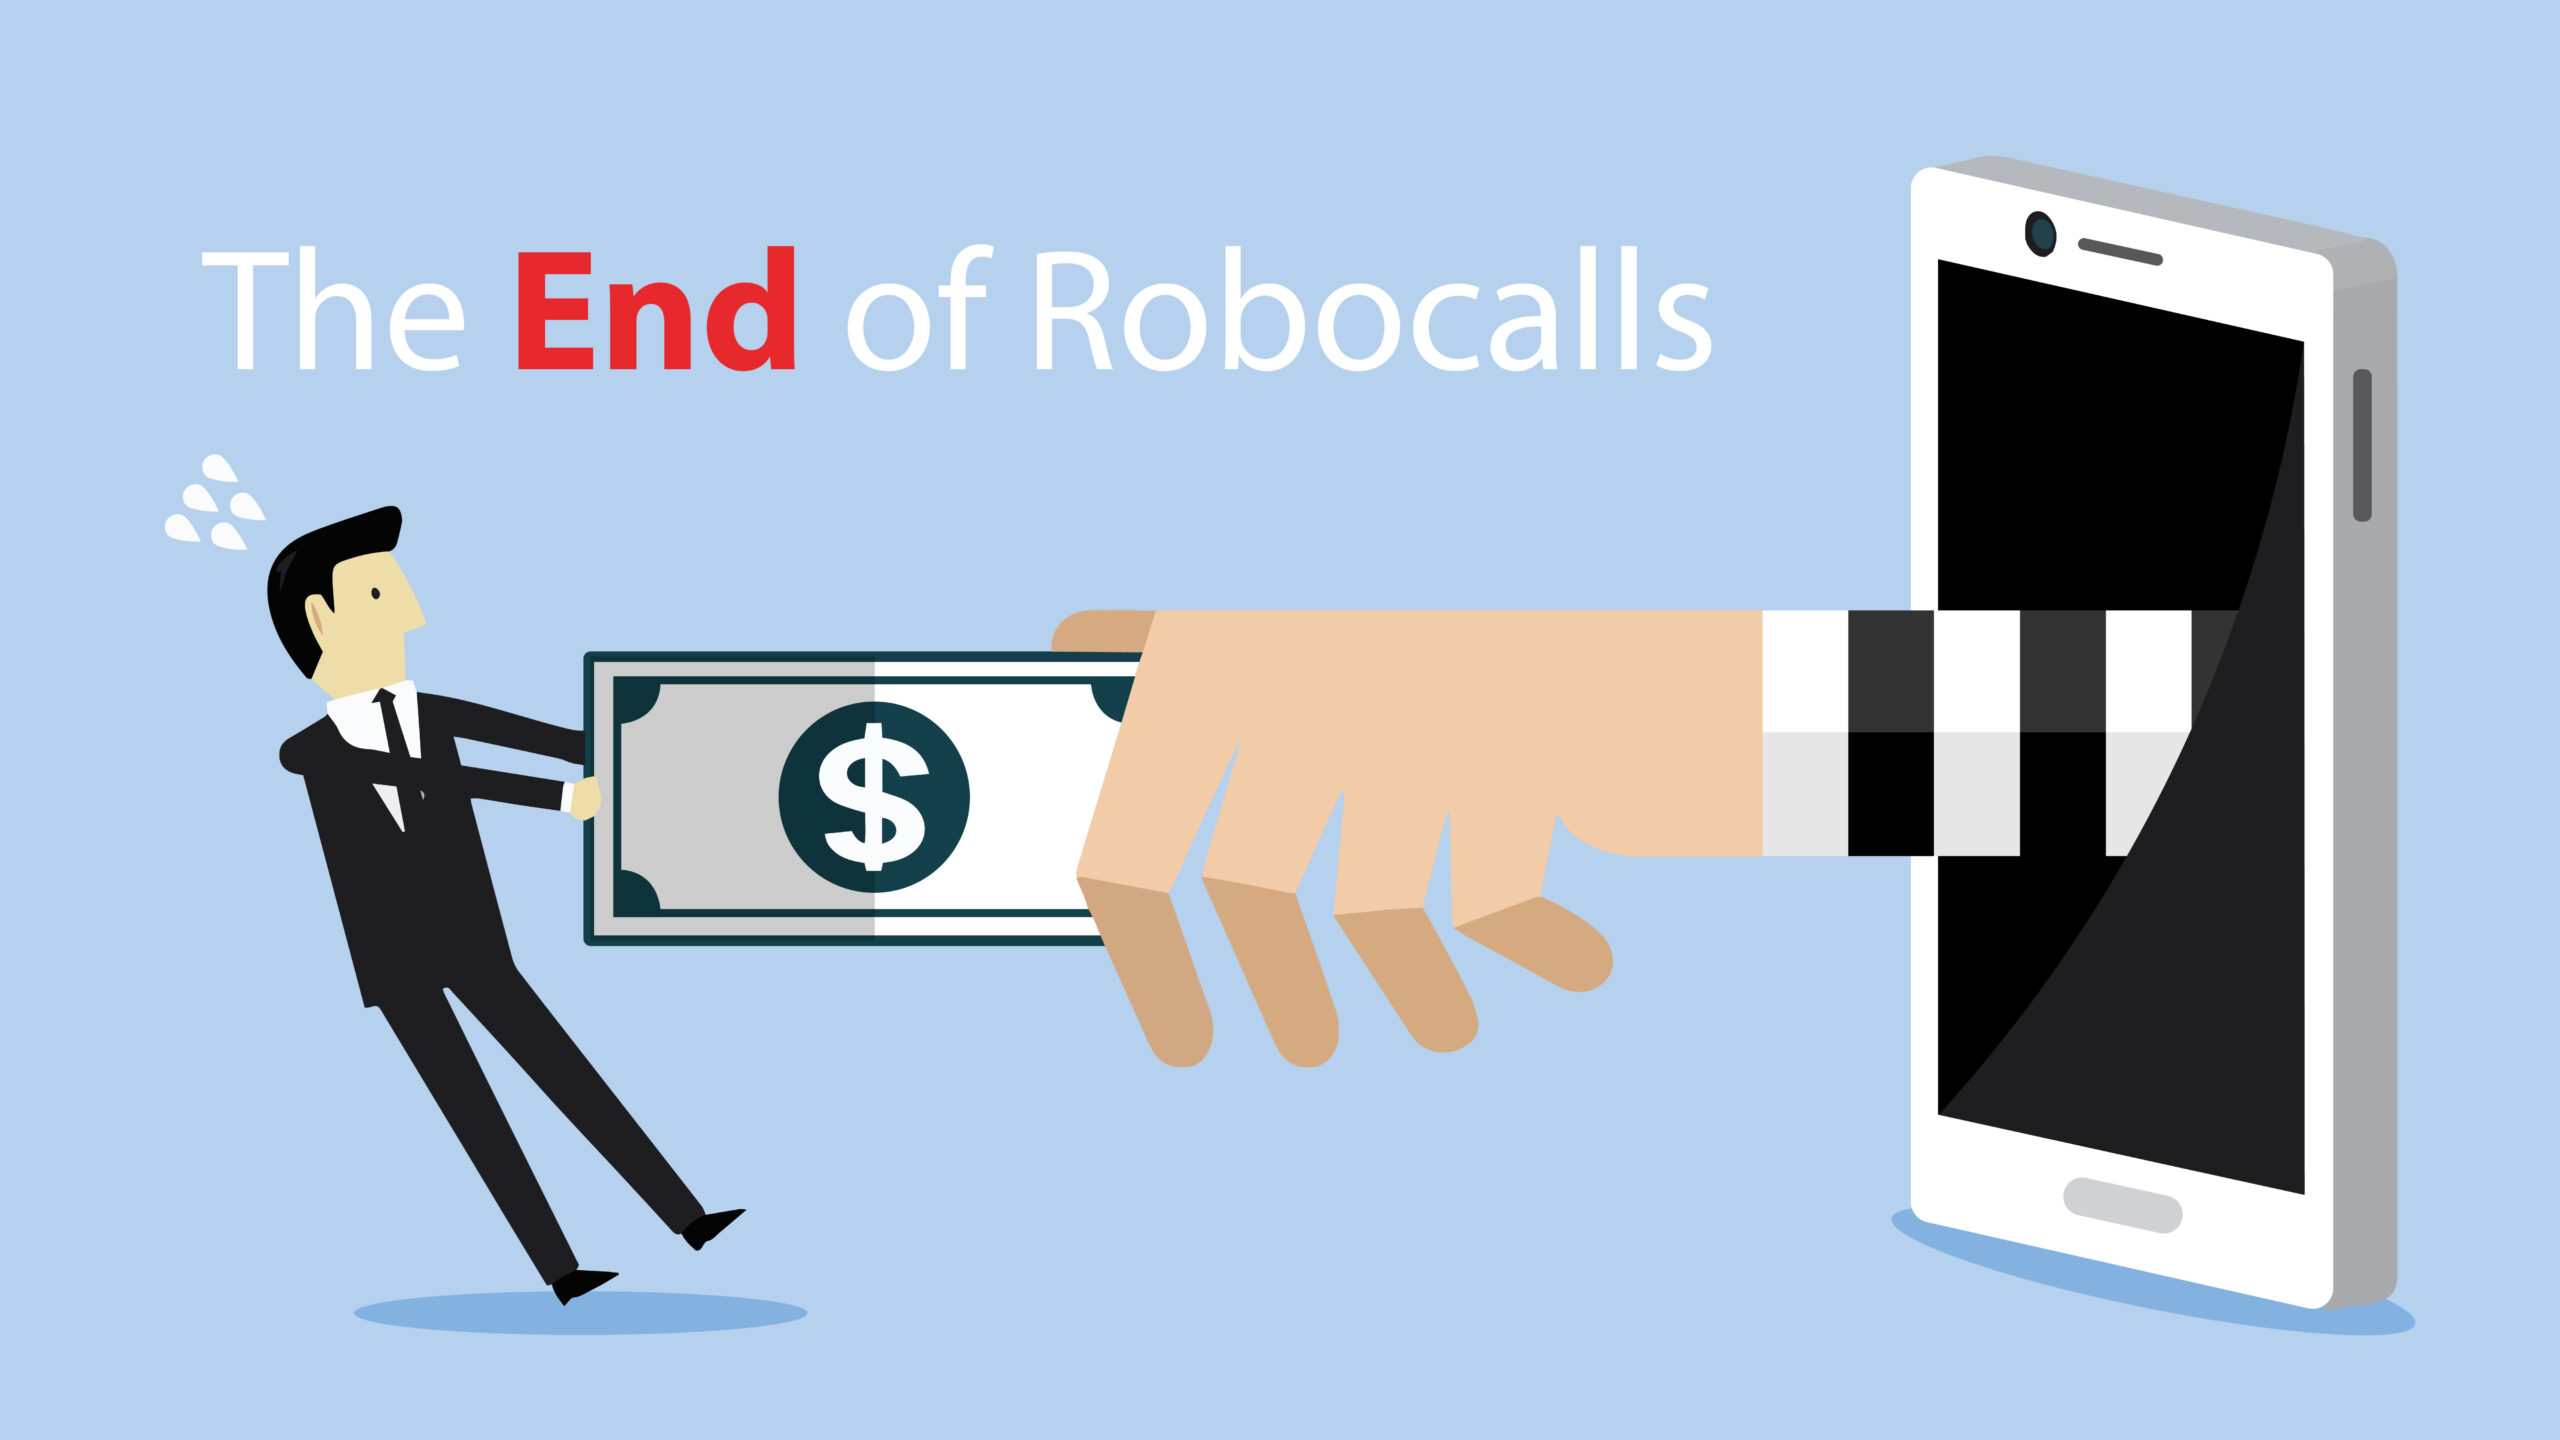 The End of Robocalls